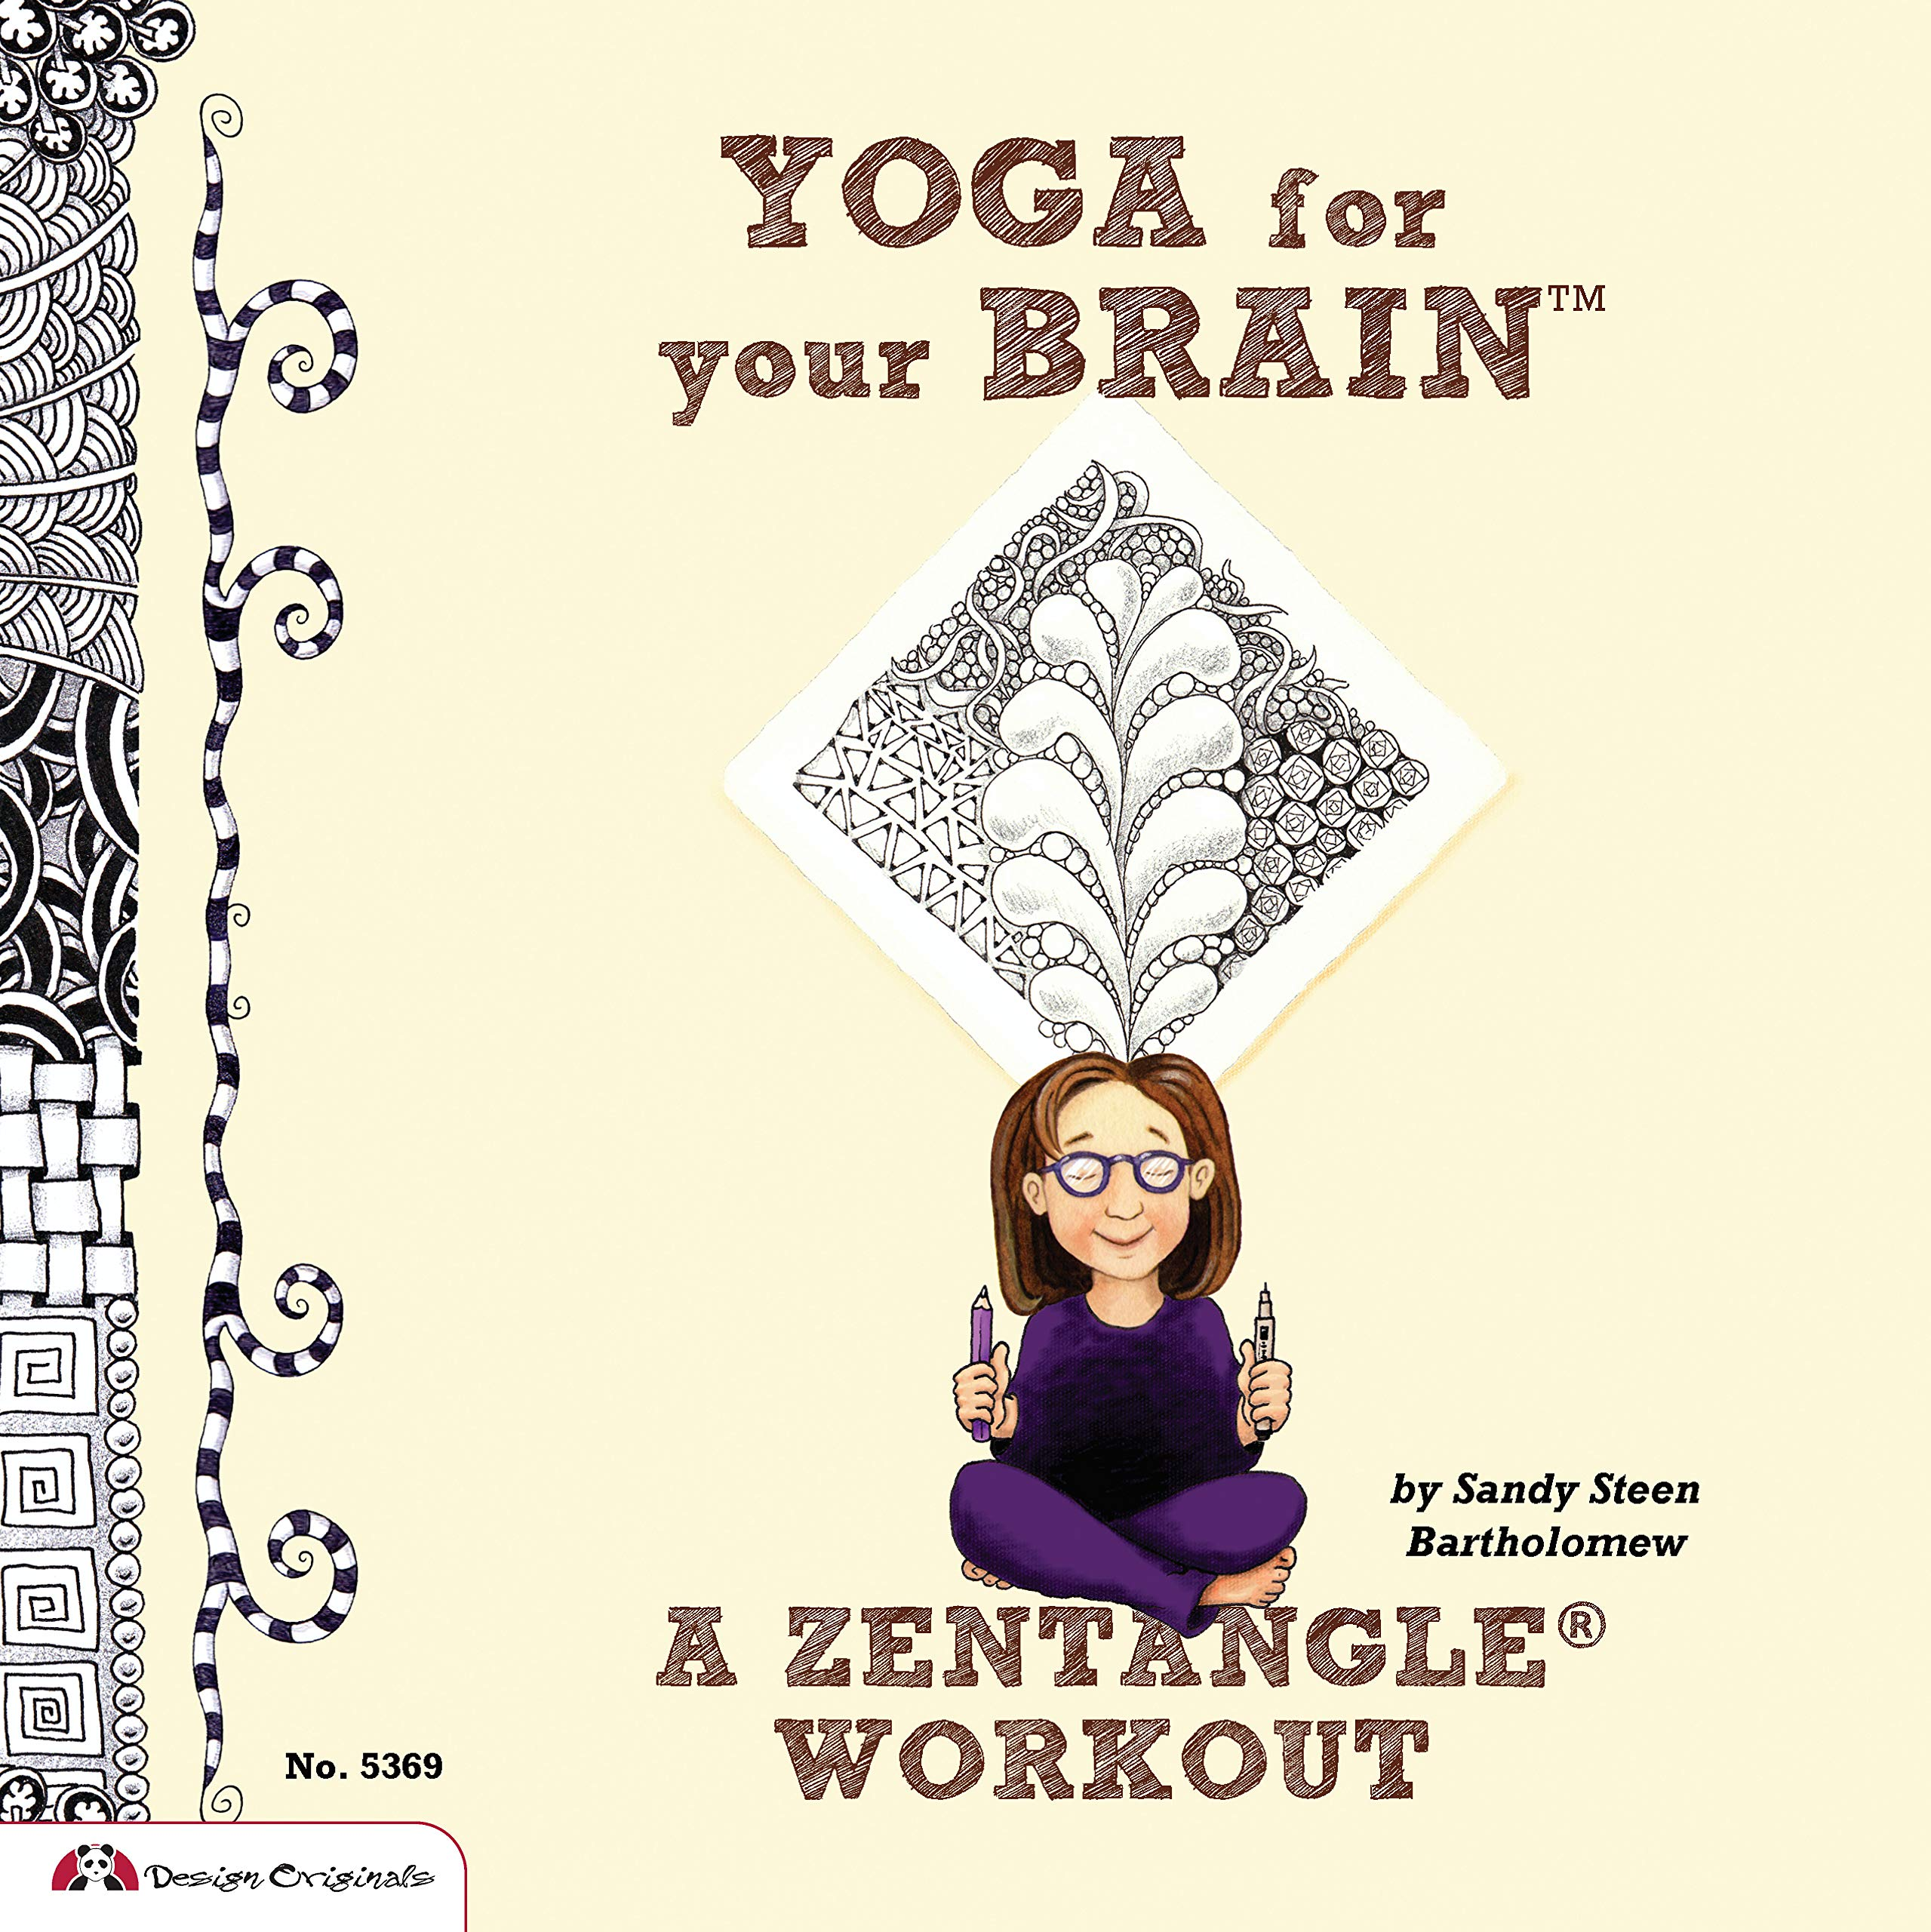 Yoga for Your Brain (TM): A Zentangle (R) Workout (Design Originals) Over 60 Tangle Patterns, Plus Ideas, Tips, and Projects for Experienced Tanglers (Sequel to Totally Tangled: Zentangle and Beyond)